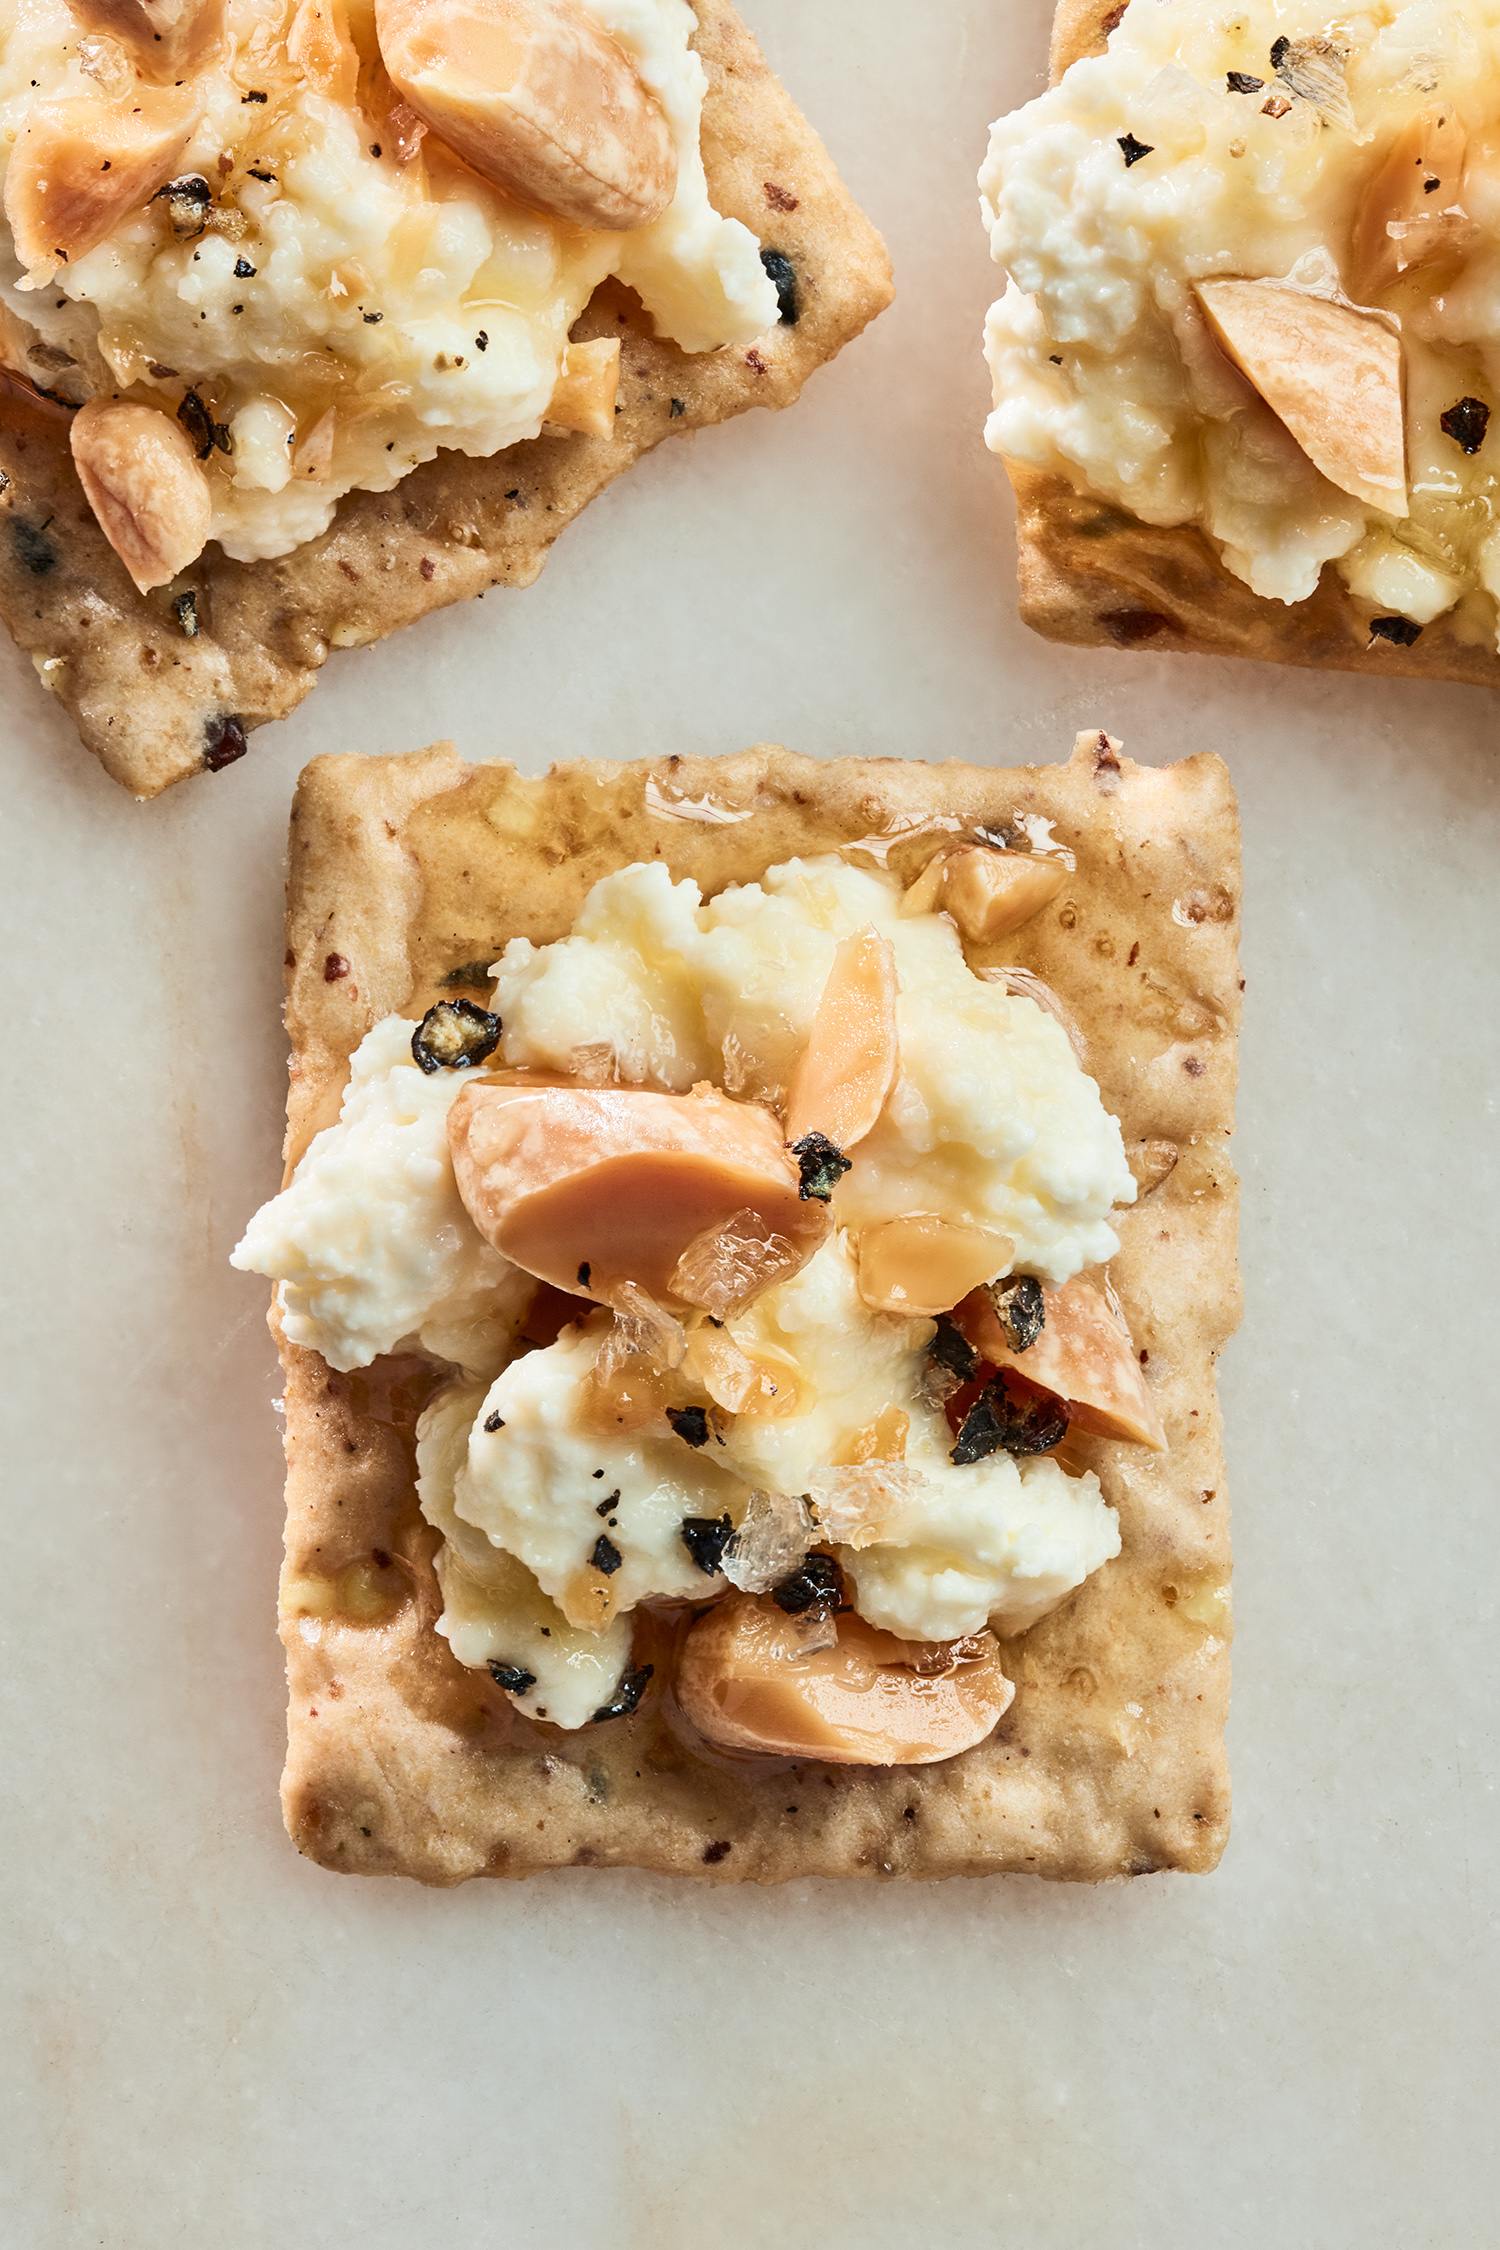 cracker with almonds and ricotta